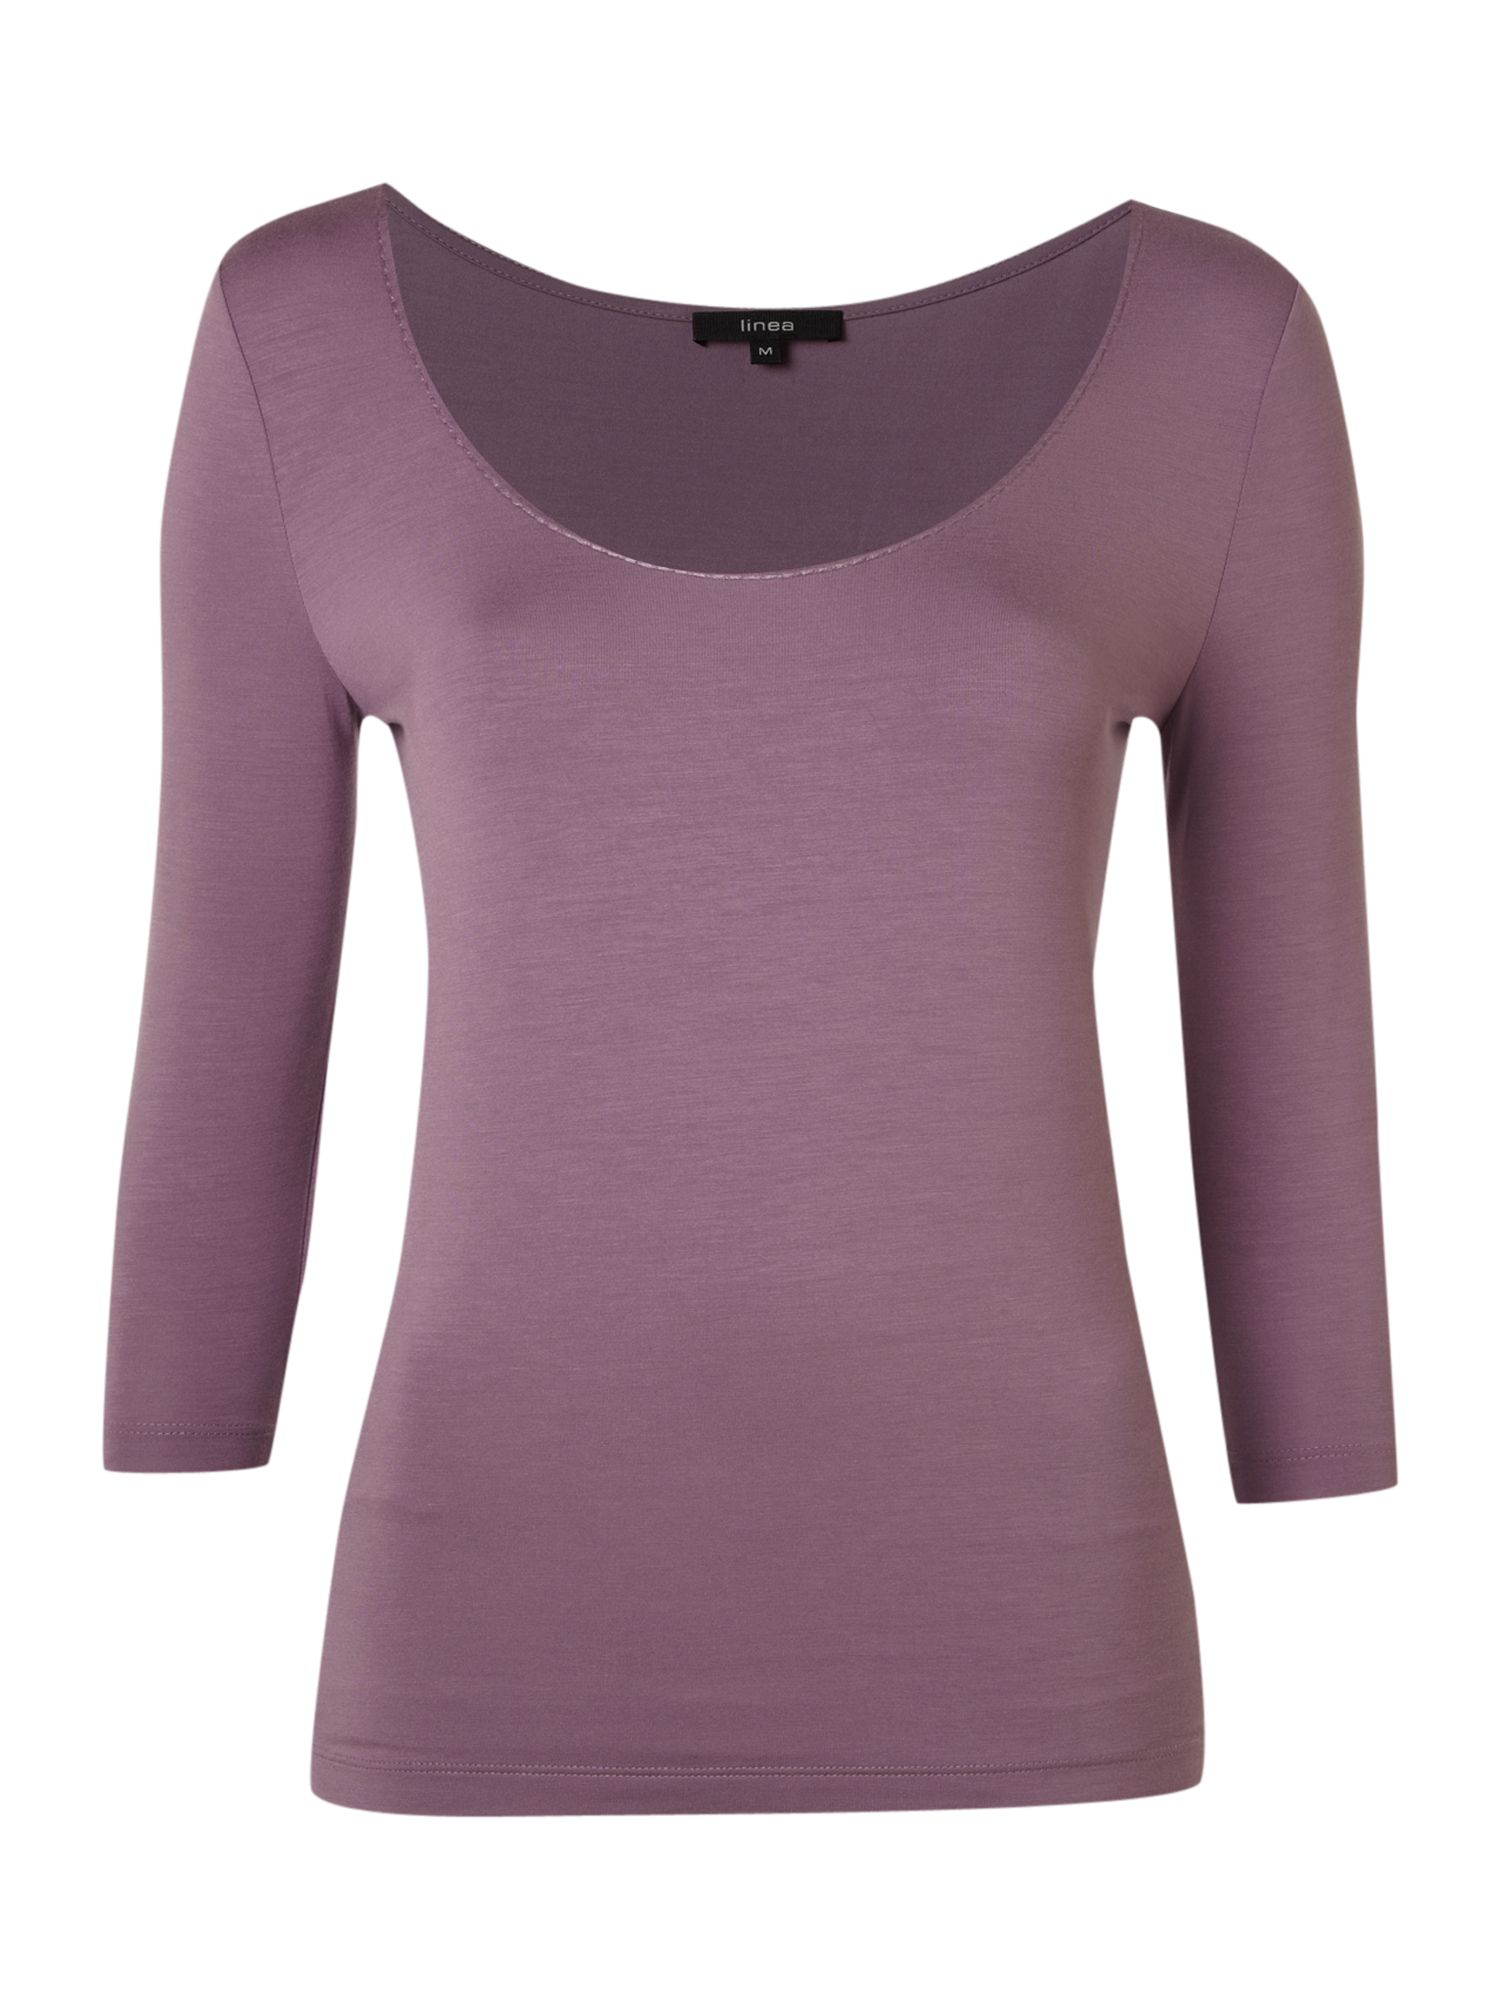 Linea Scoop neck T-shirt - Purple product image